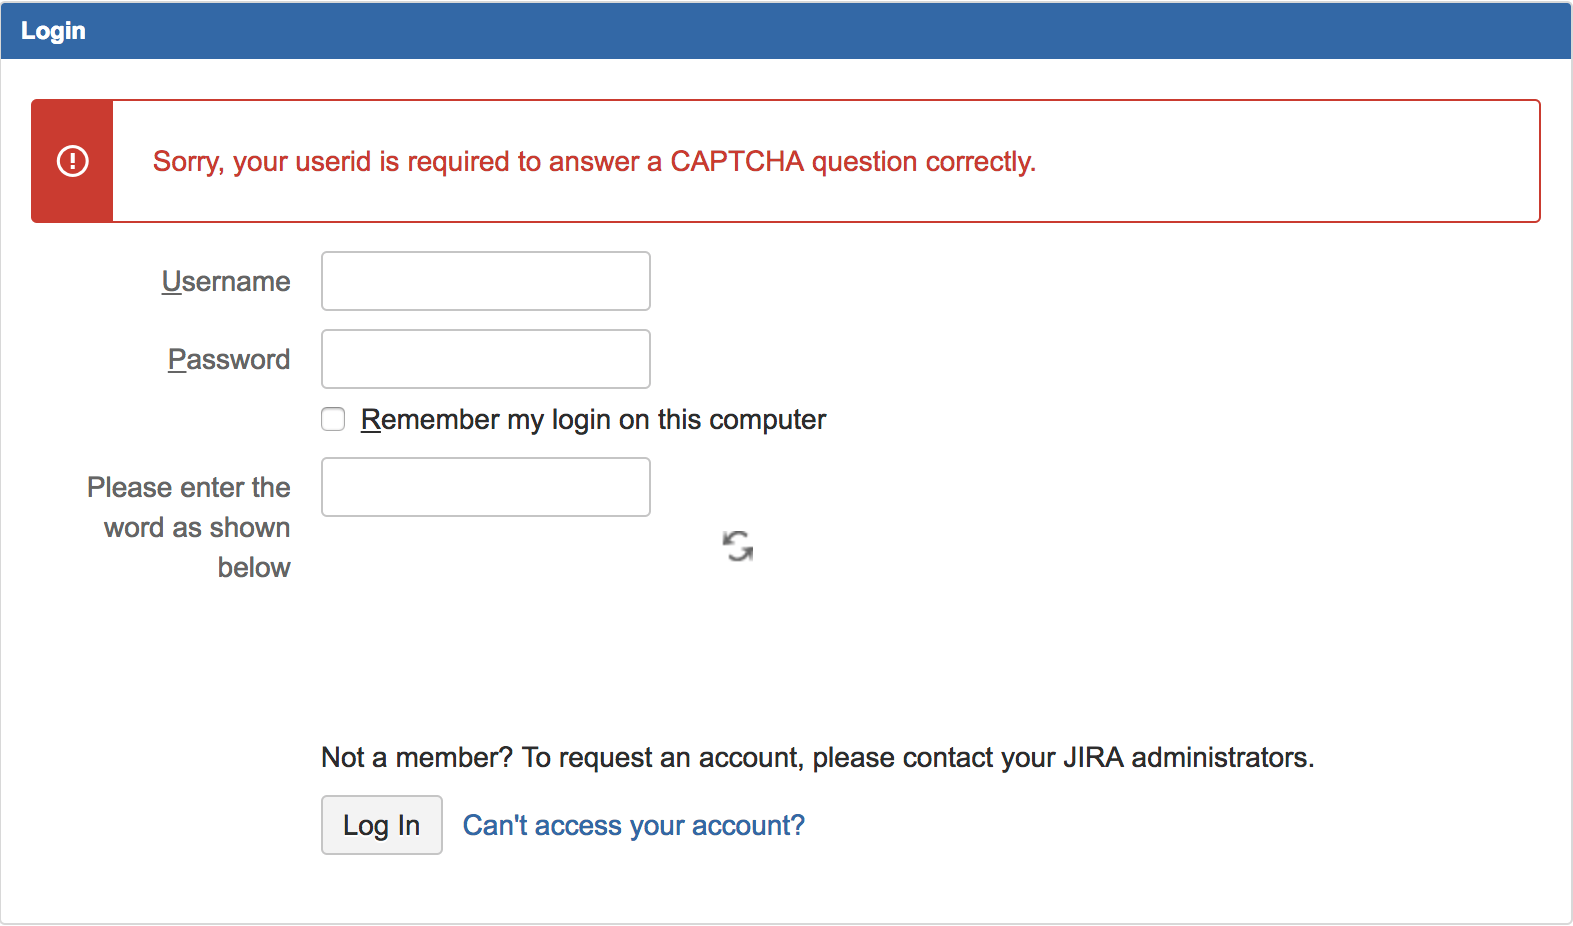 JIRA UI shows unreadable text or nothing on CAPTCHA and some